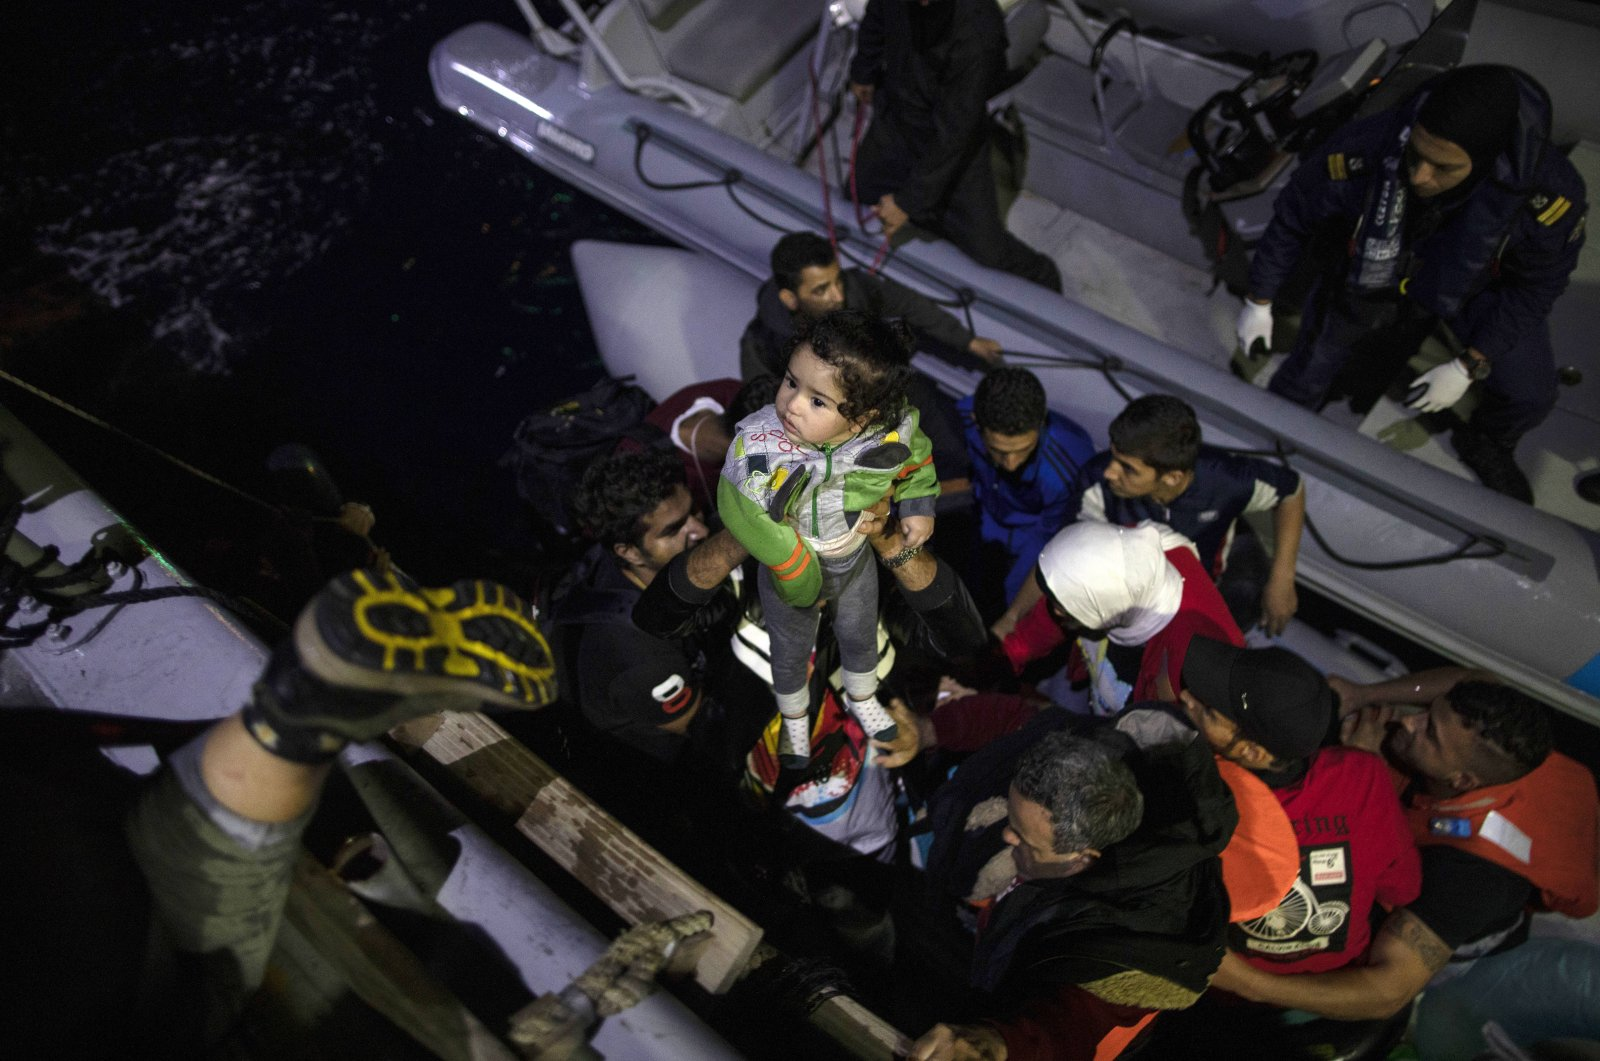 Refugees and migrants board a coast guard ship during a rescue operation on Sept. 26, 2019, near the Greek island from Samos. (AP Photo)